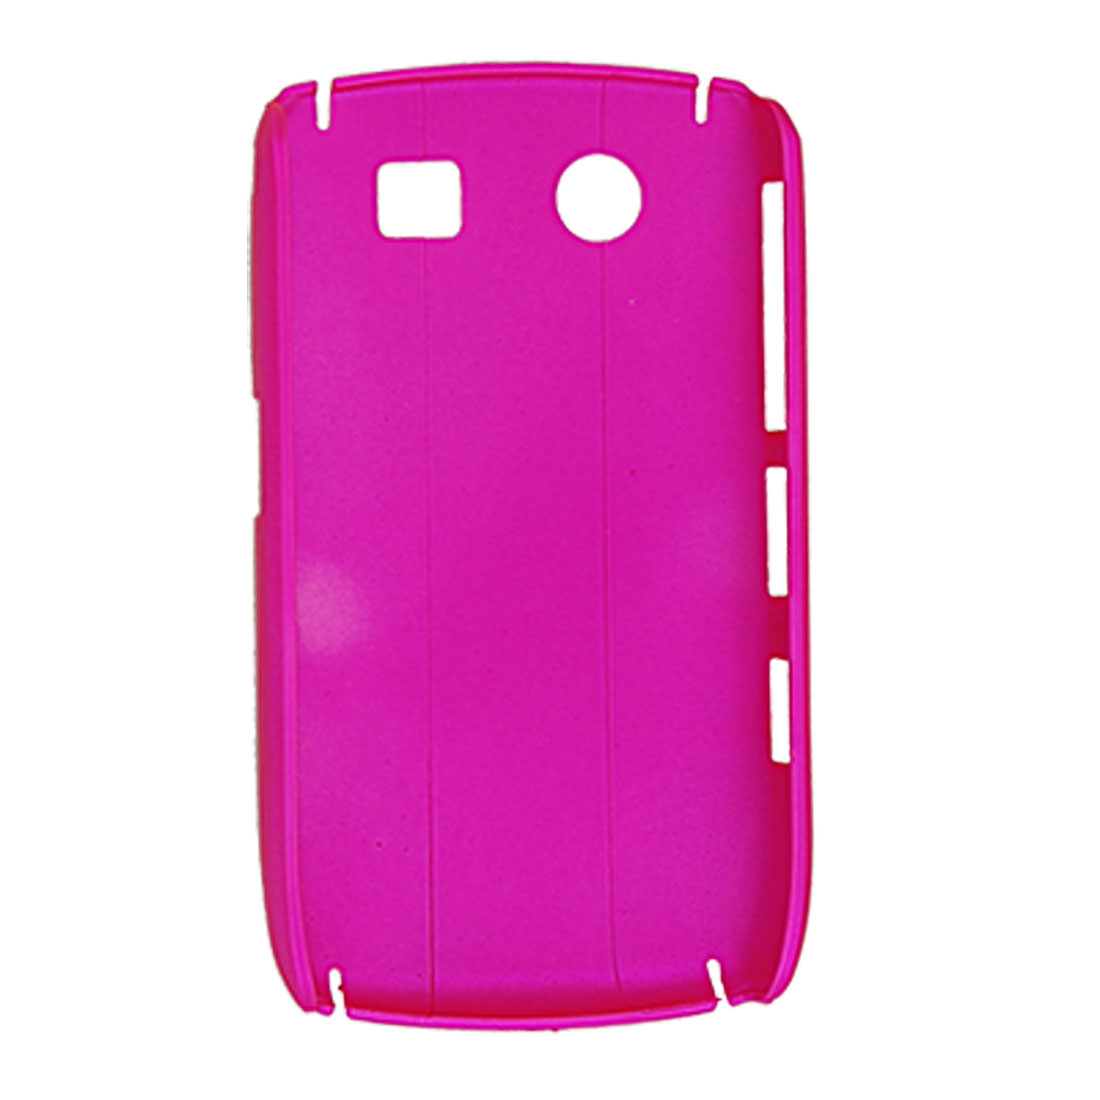 Hot Pink Plastic Rubberized Cover for Blackberry 8900